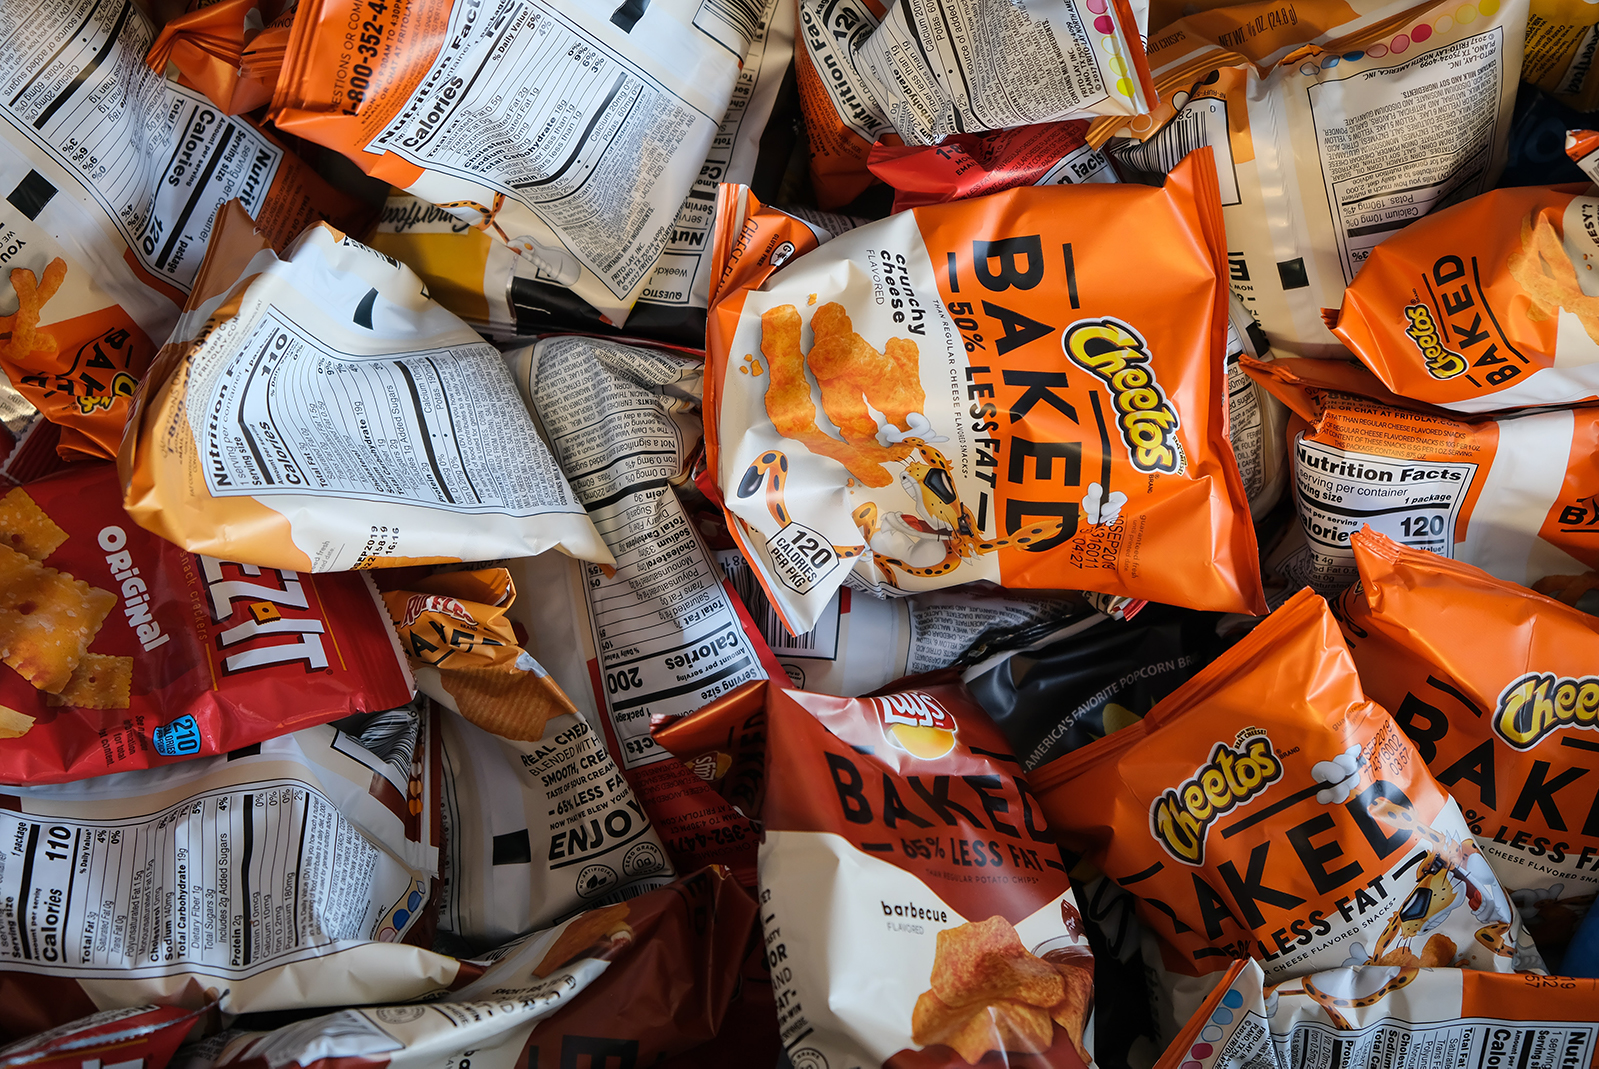 pile of single serve bags of baked cheetos, potato chips, and cheez its